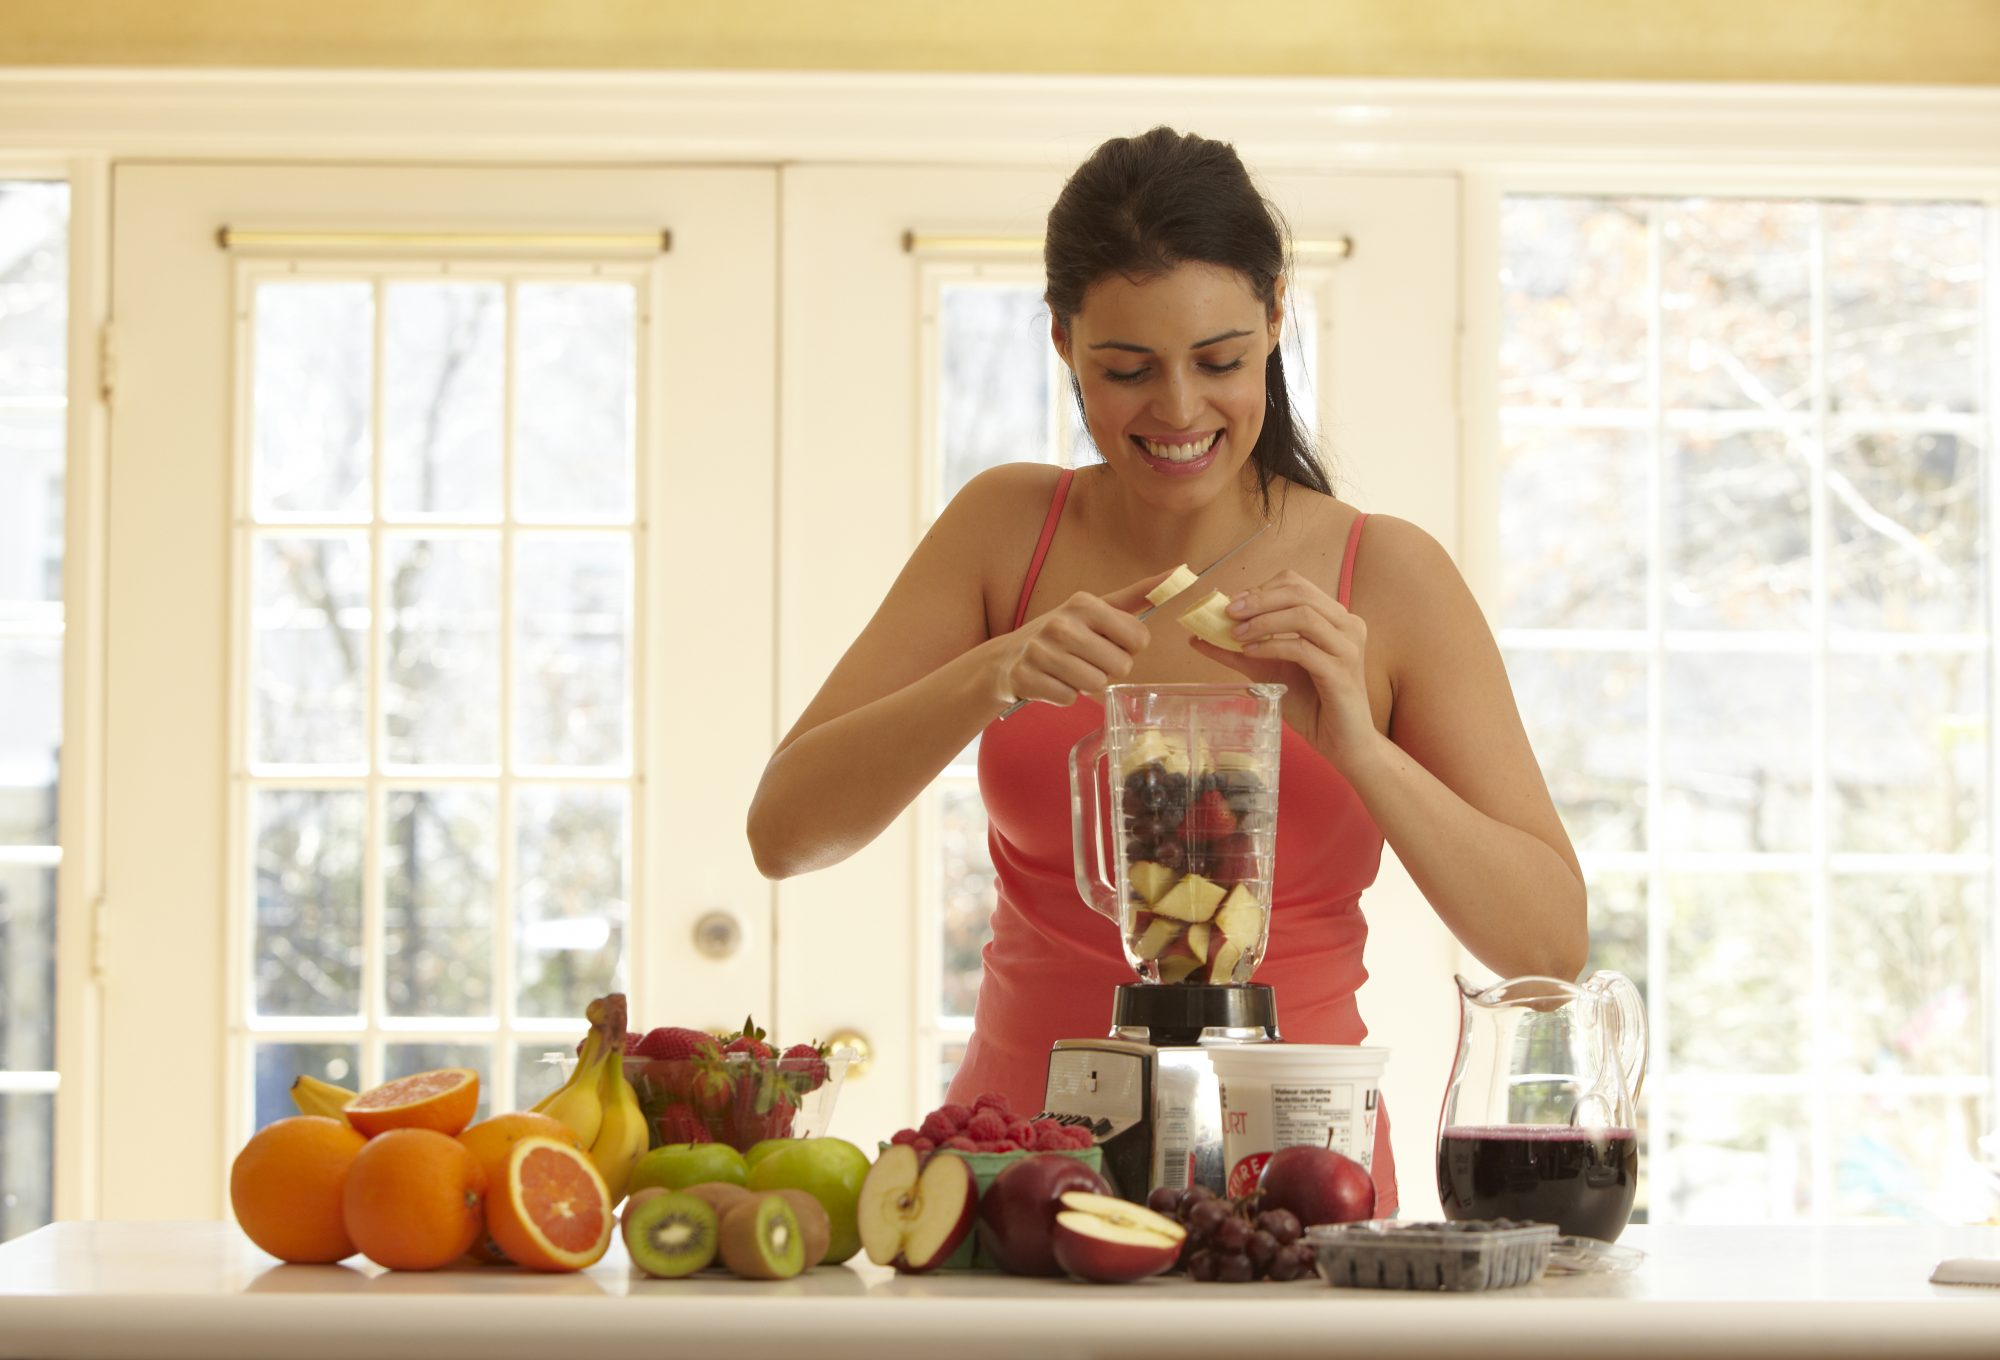 weight-loss-woman-blending-fruit-20501331